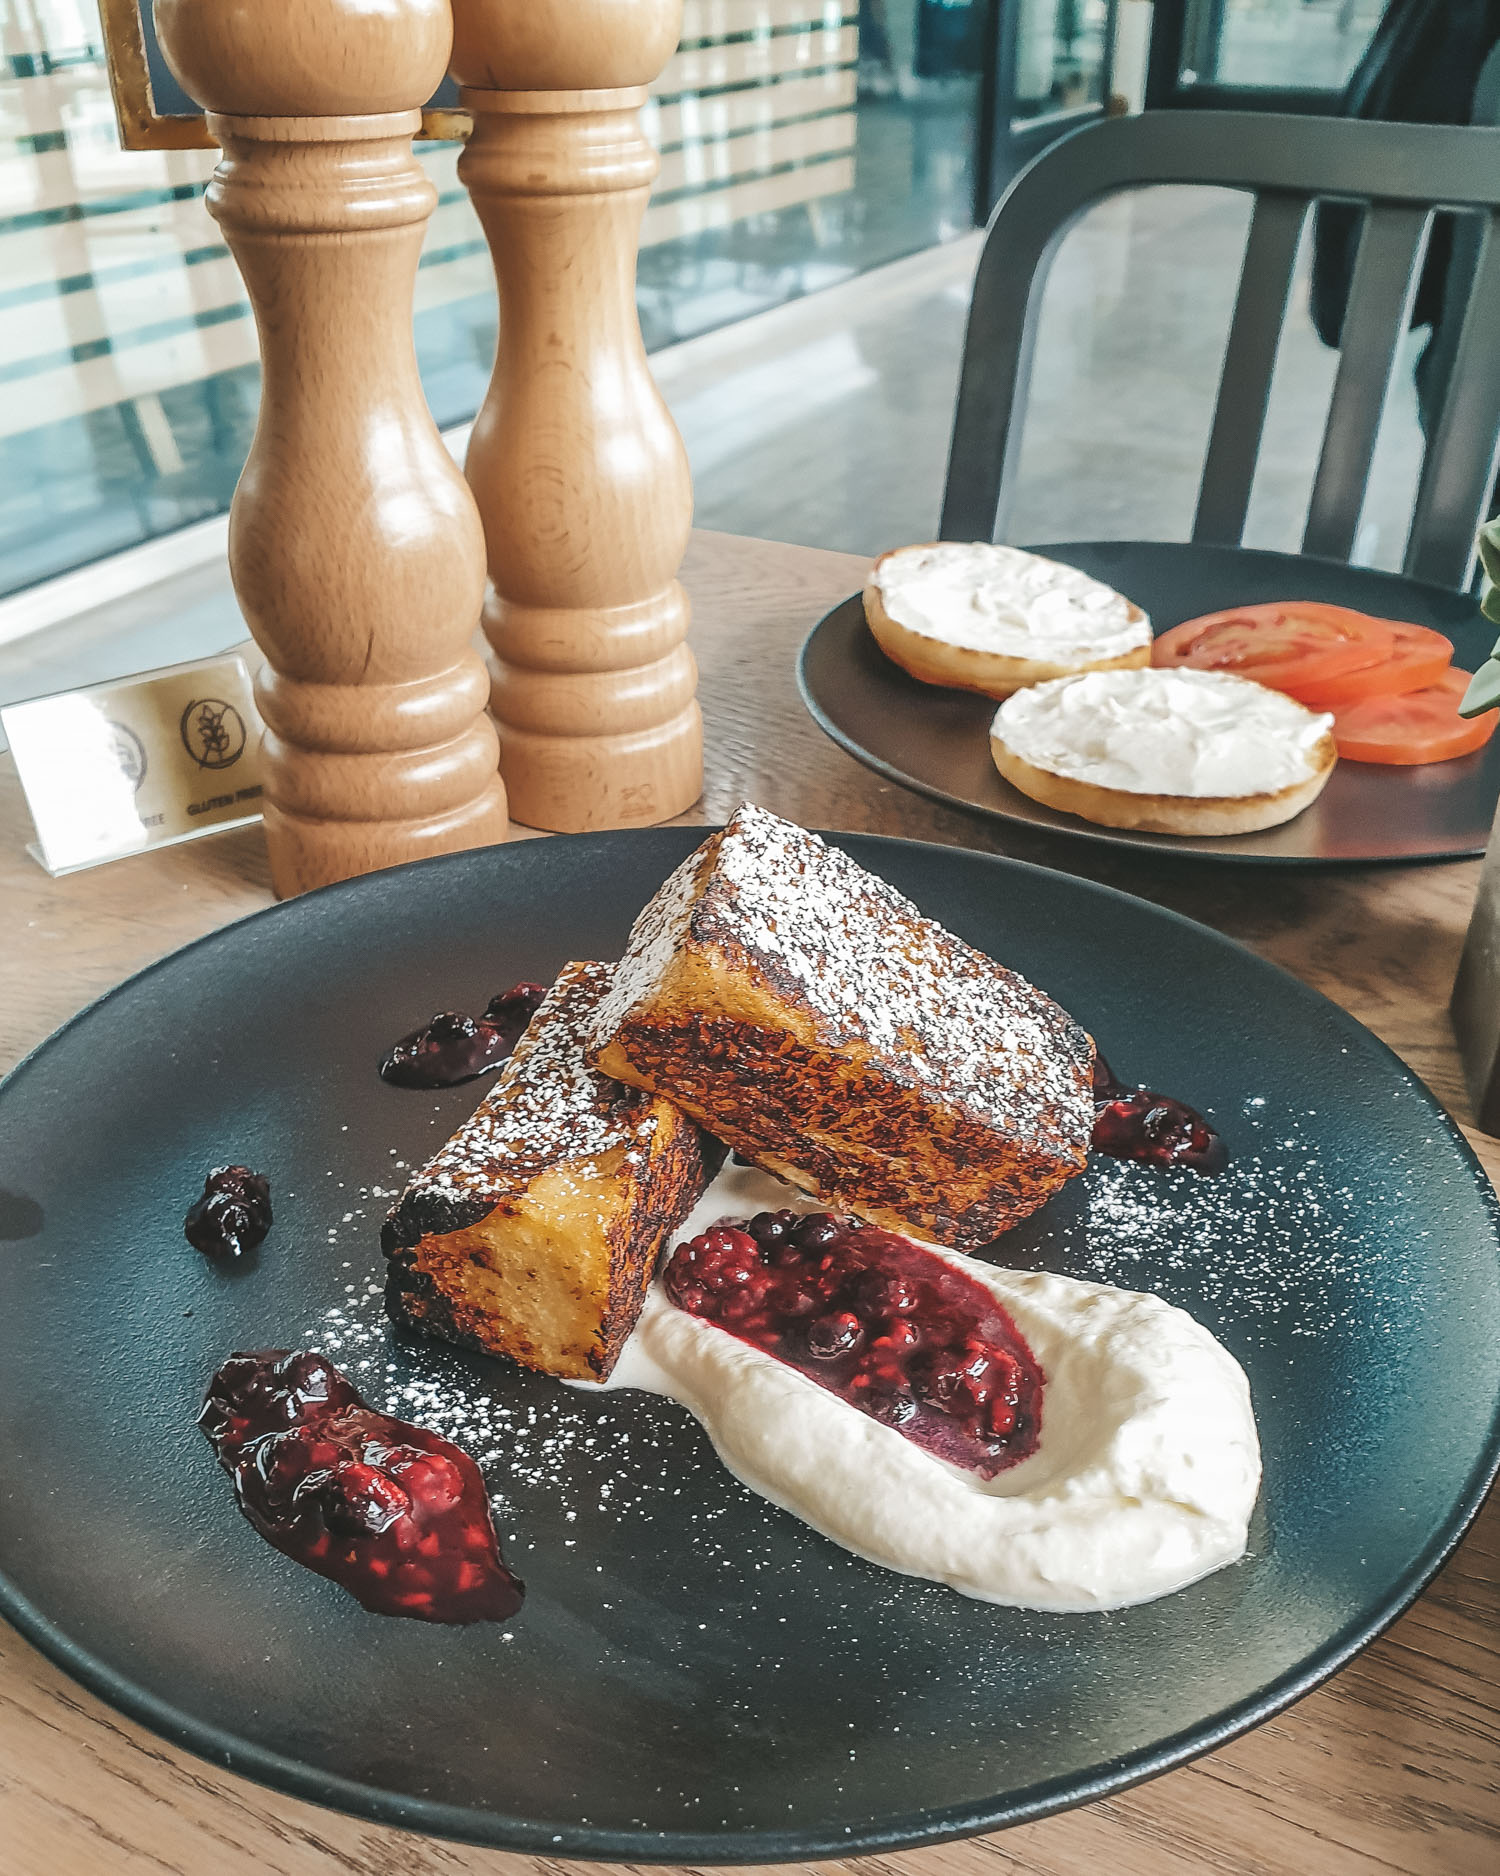 Tawa Bakery 100% gluten-free restaurant in Abu Dhabi french toast